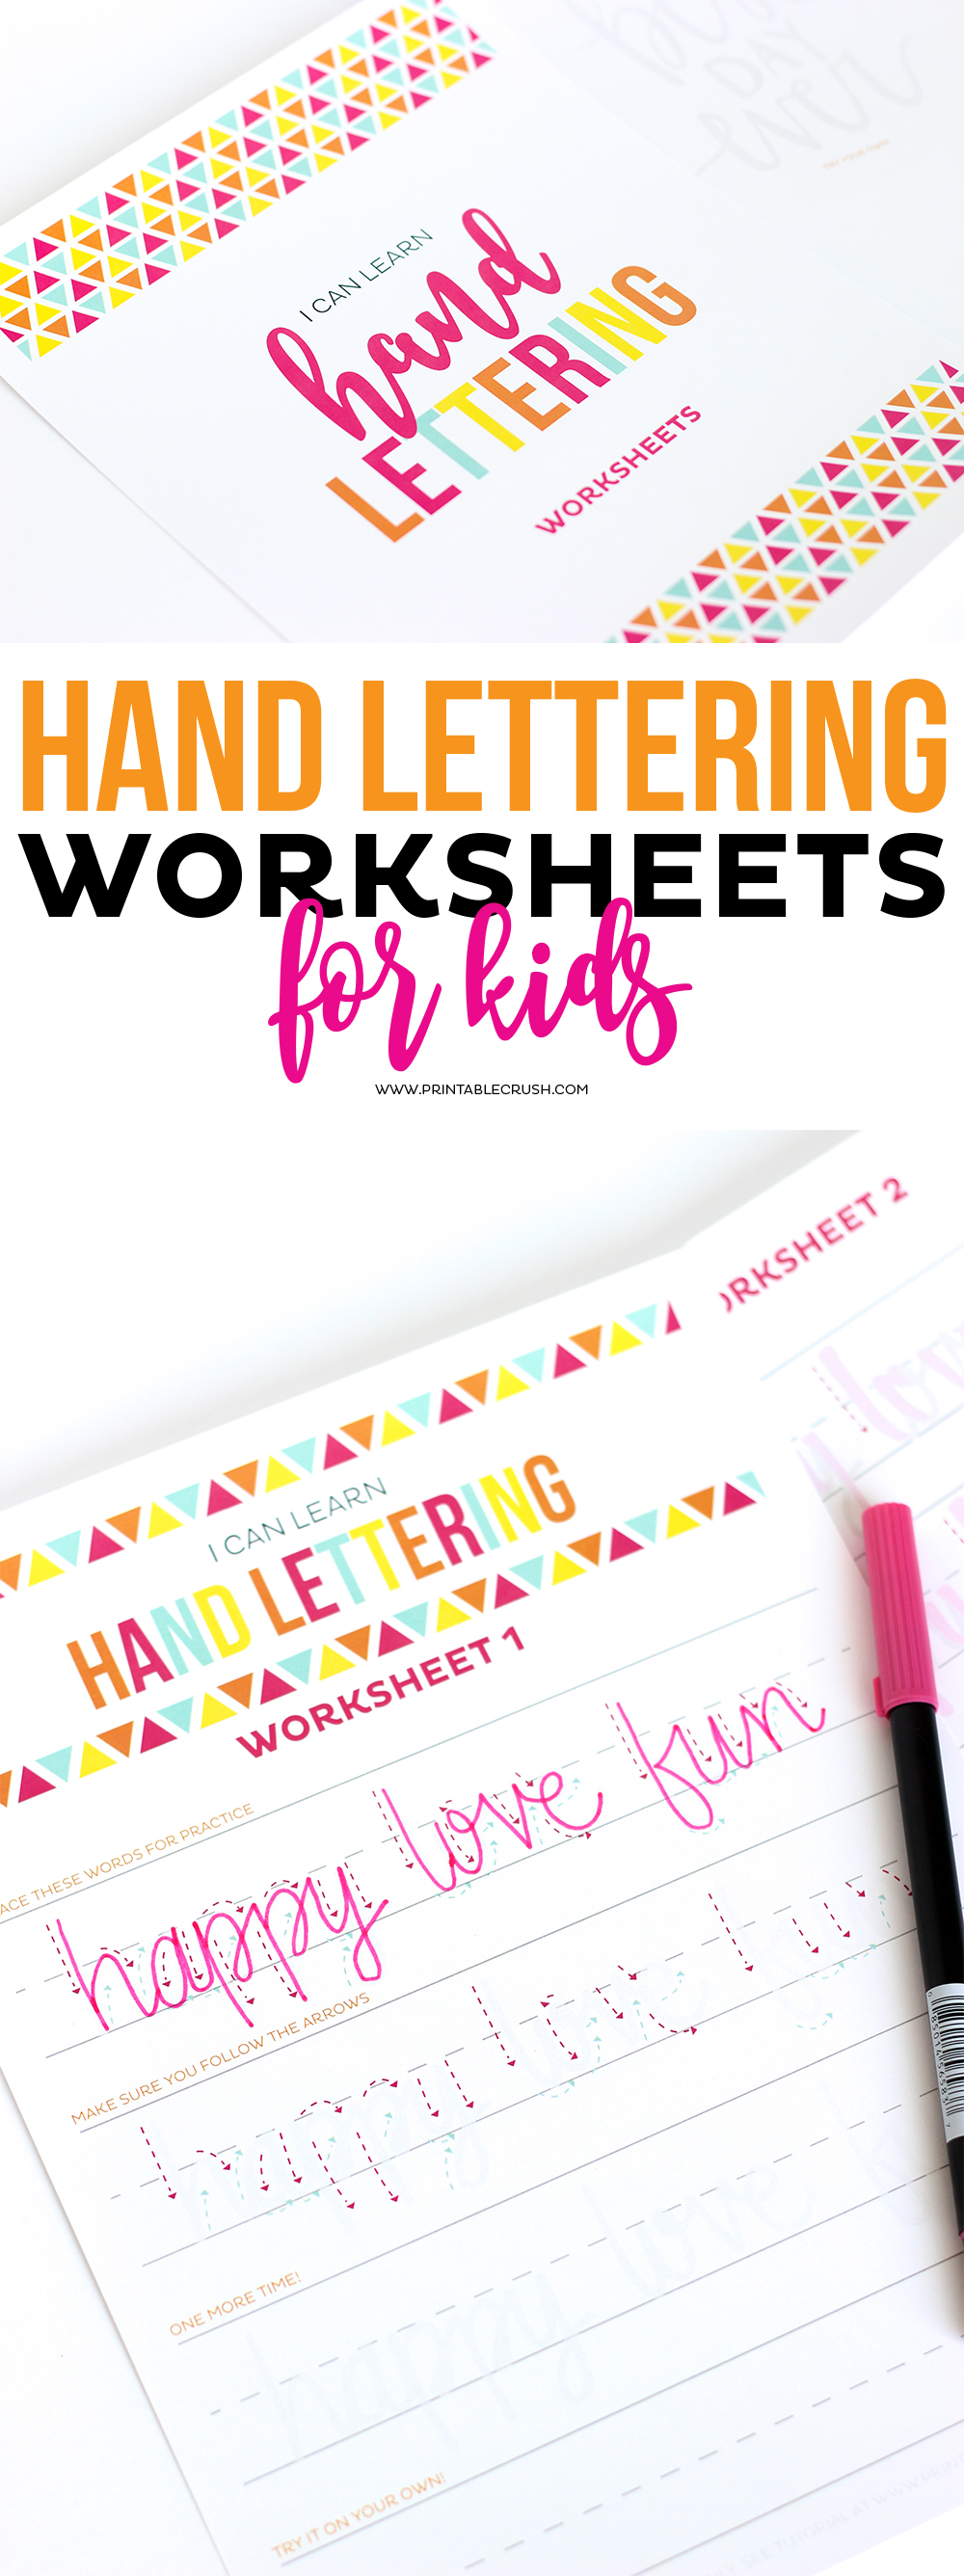 http://printablecrush.com/wp-content/uploads/2016/09/Hand-Lettering-Tutorials-for-Kids-27-copy-2.jpg